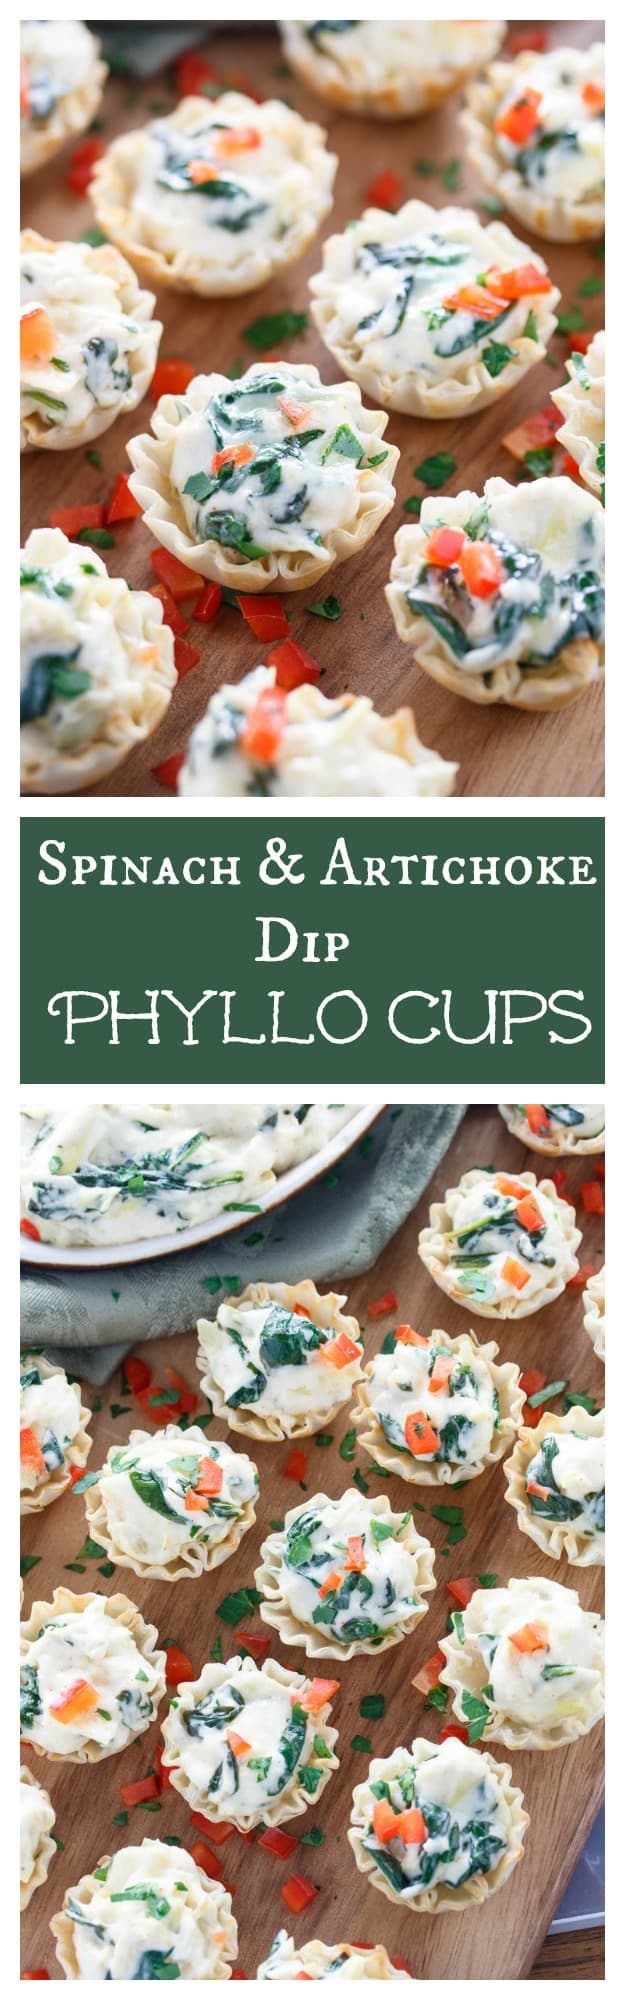 spinach-and-artichoke-dip-phyllo-cups